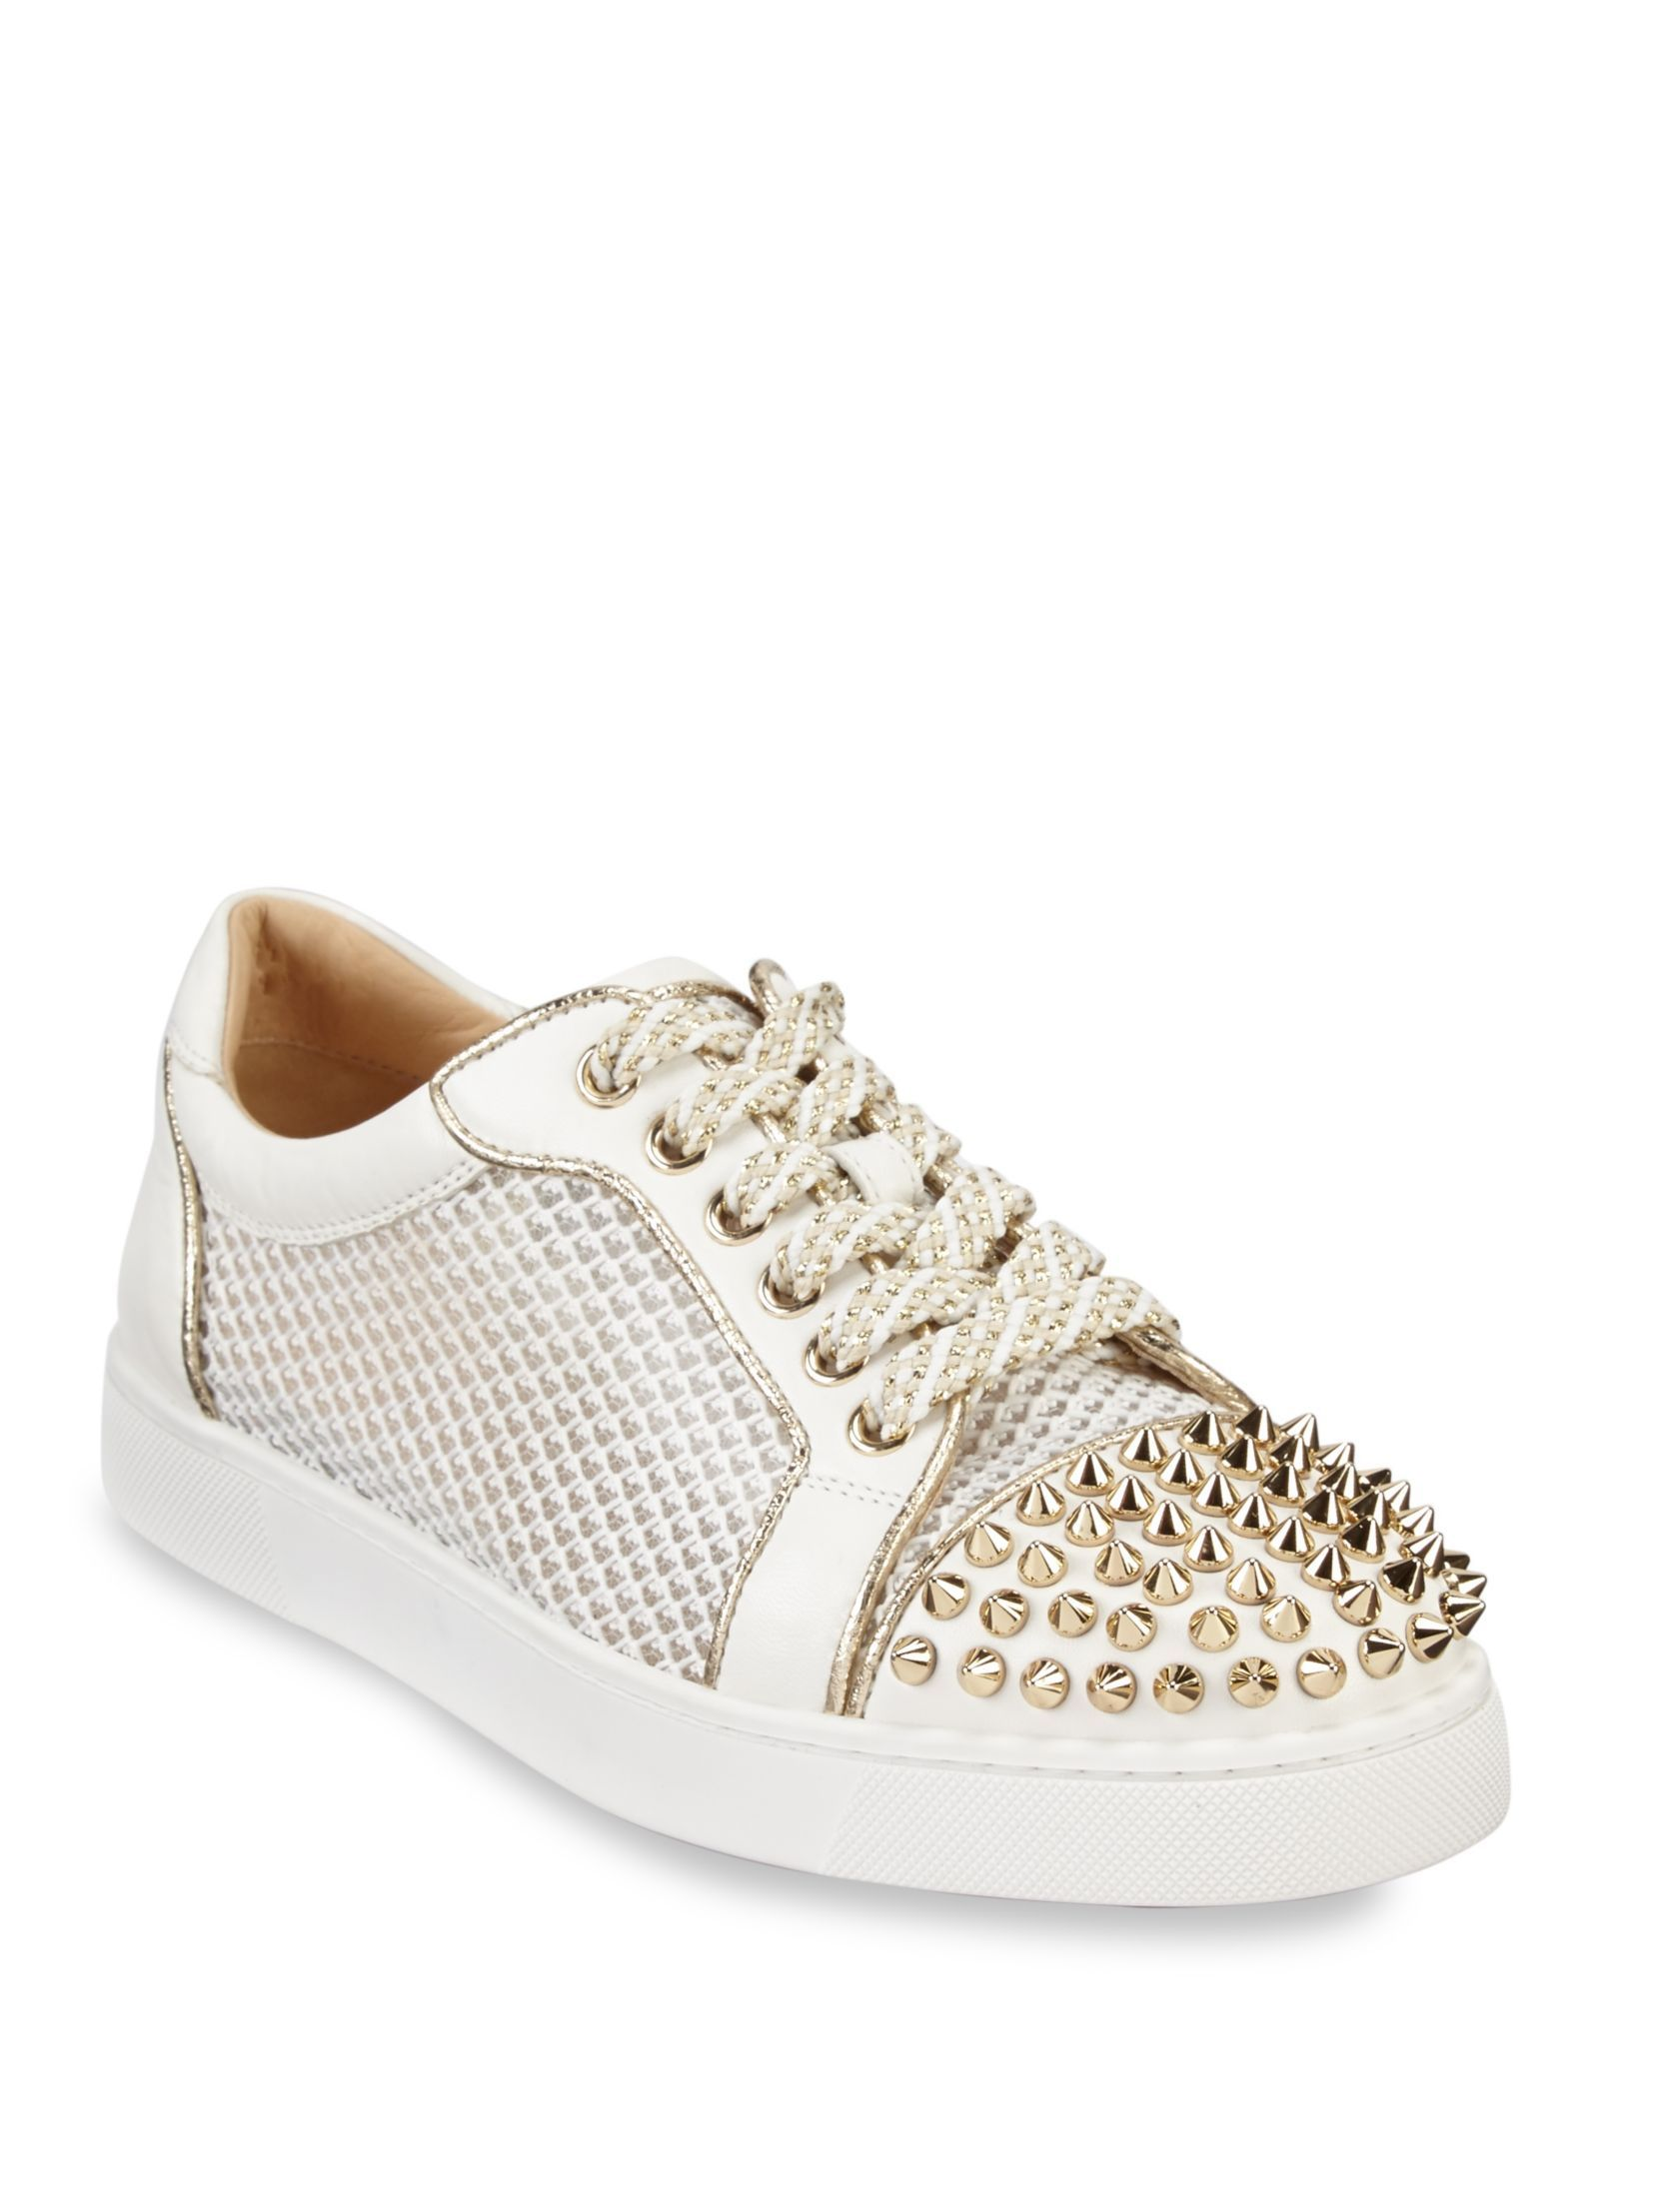 Christian Louboutin AC Vieria Spikes Sneakers NrUcEIg